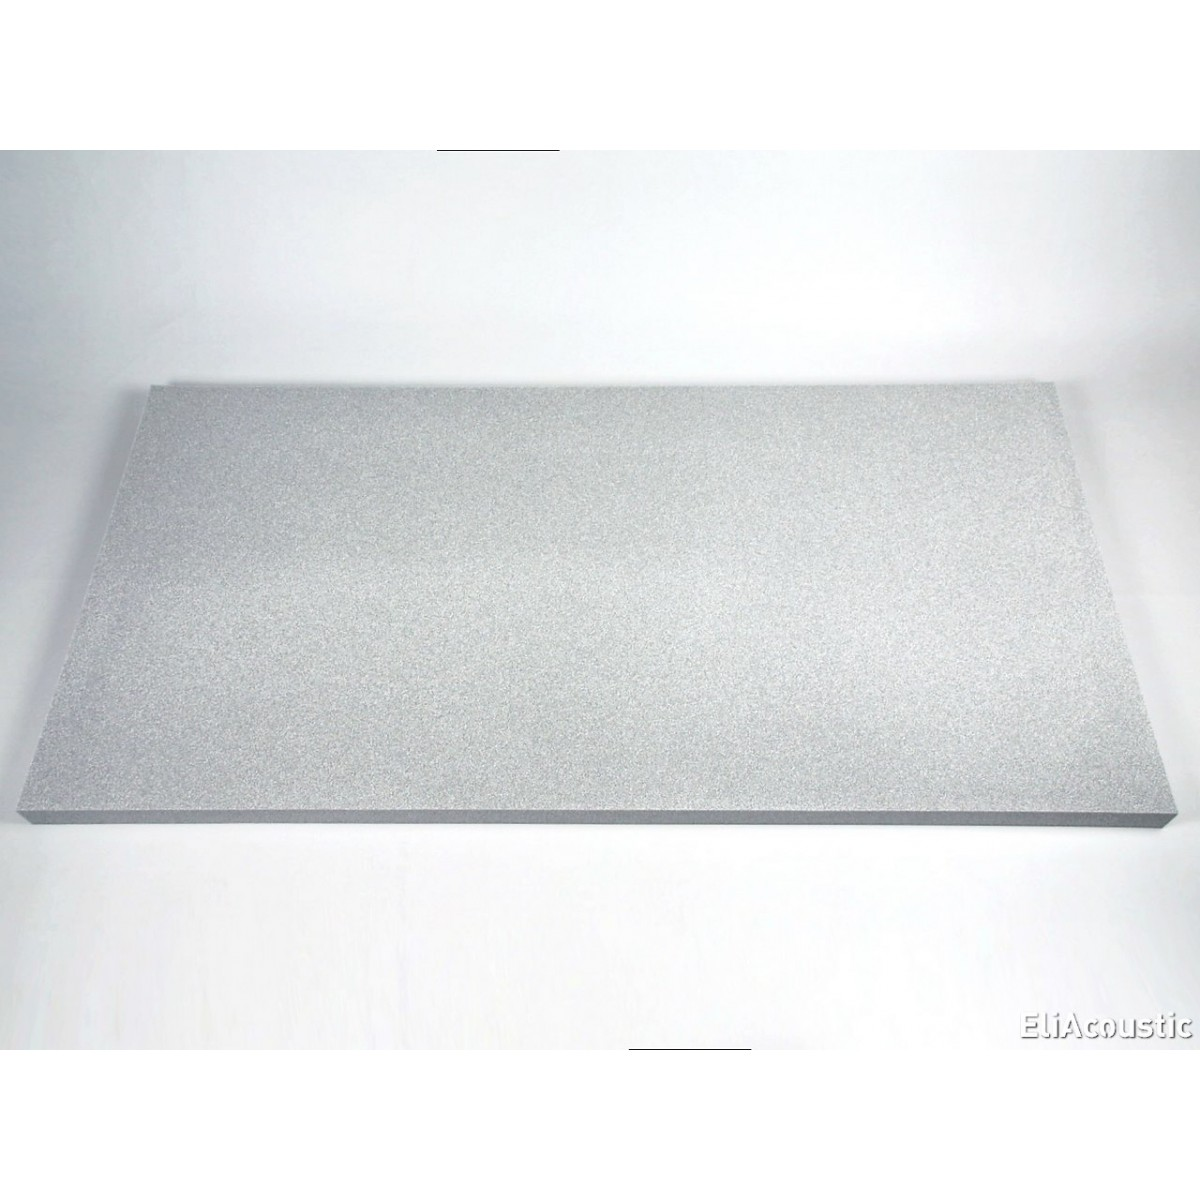 EliAcoustic Regular 120.4 Pure White